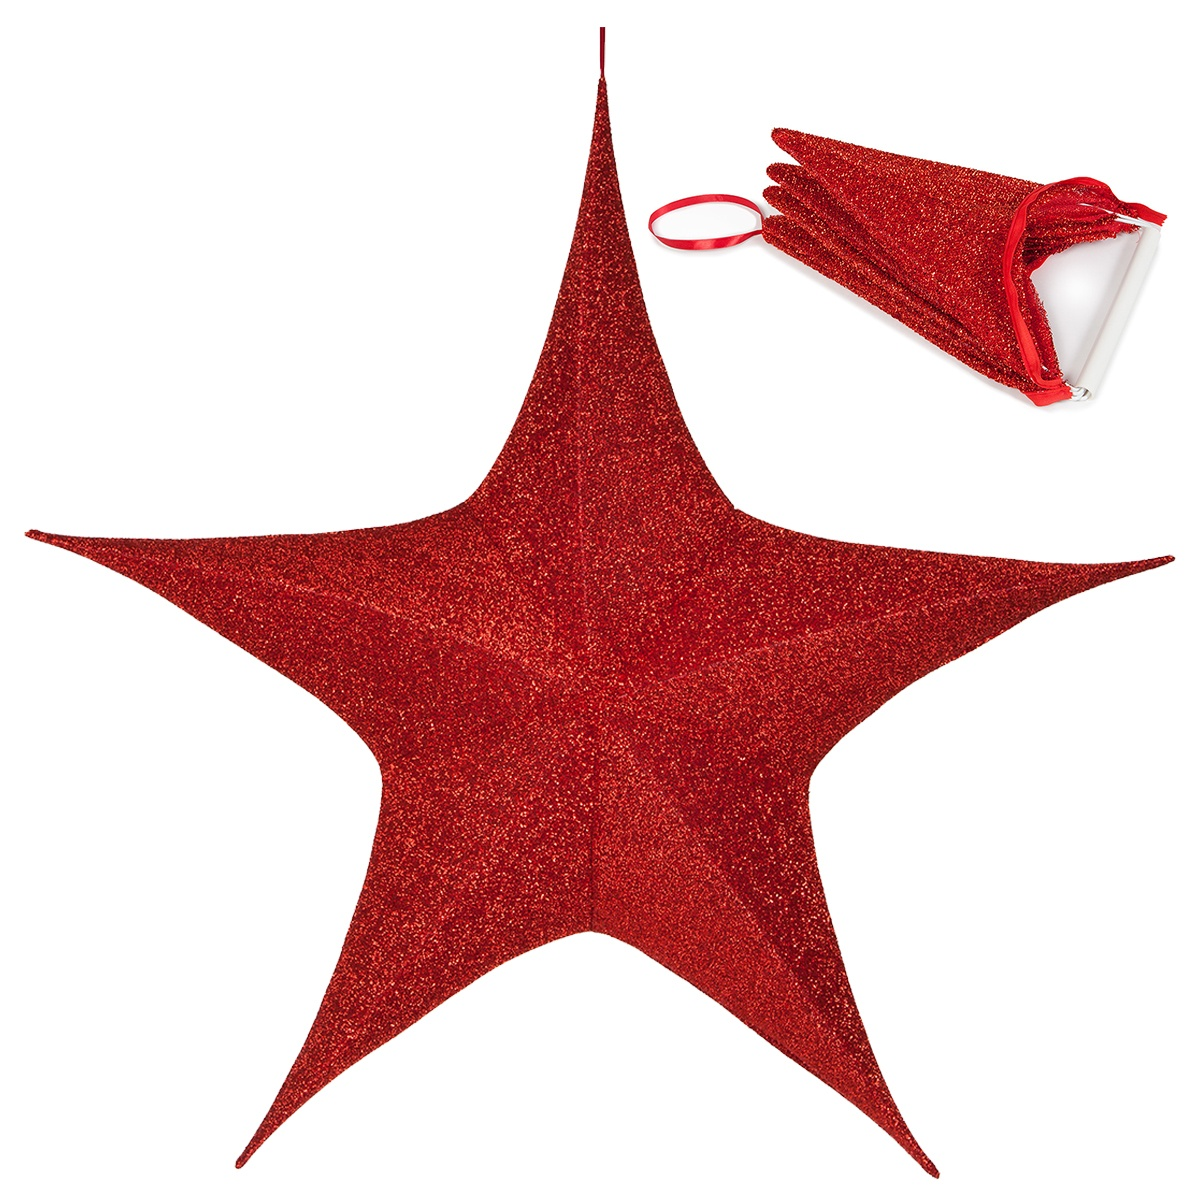 Unlit Outdoor Christmas Star Decorations